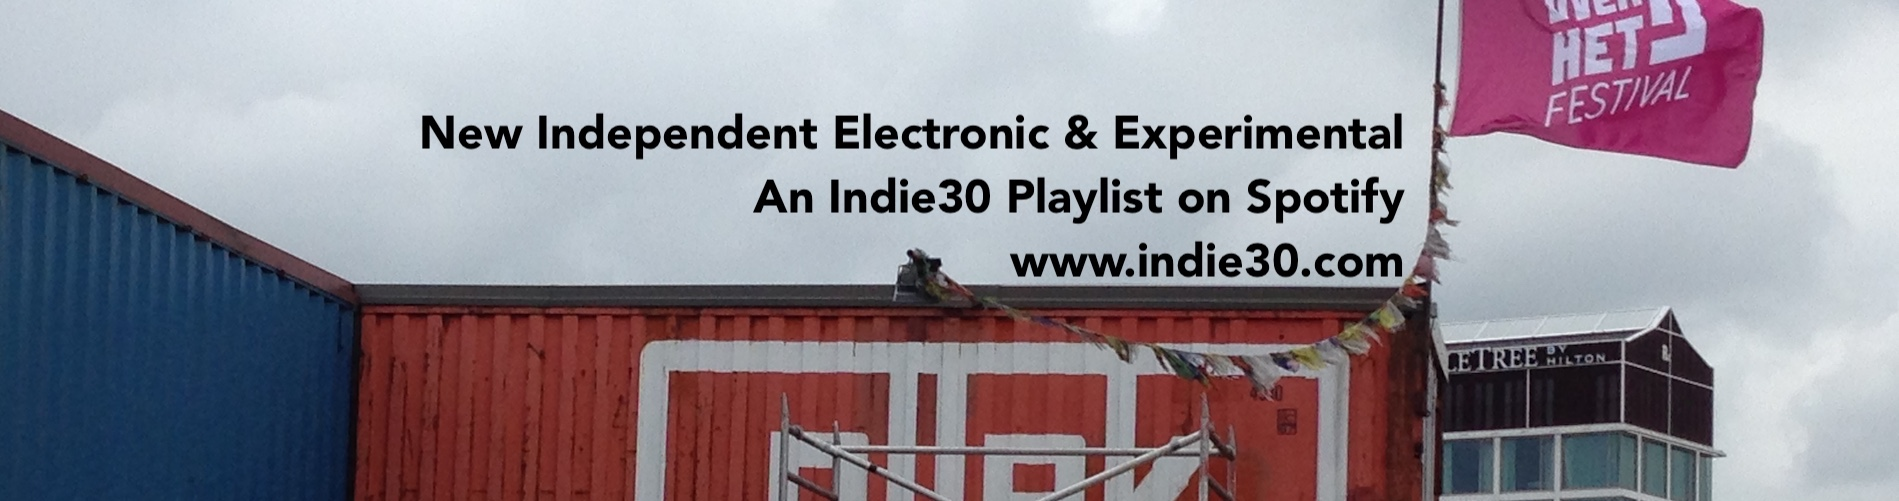 Indie30-Electronic-Experimental-Banner